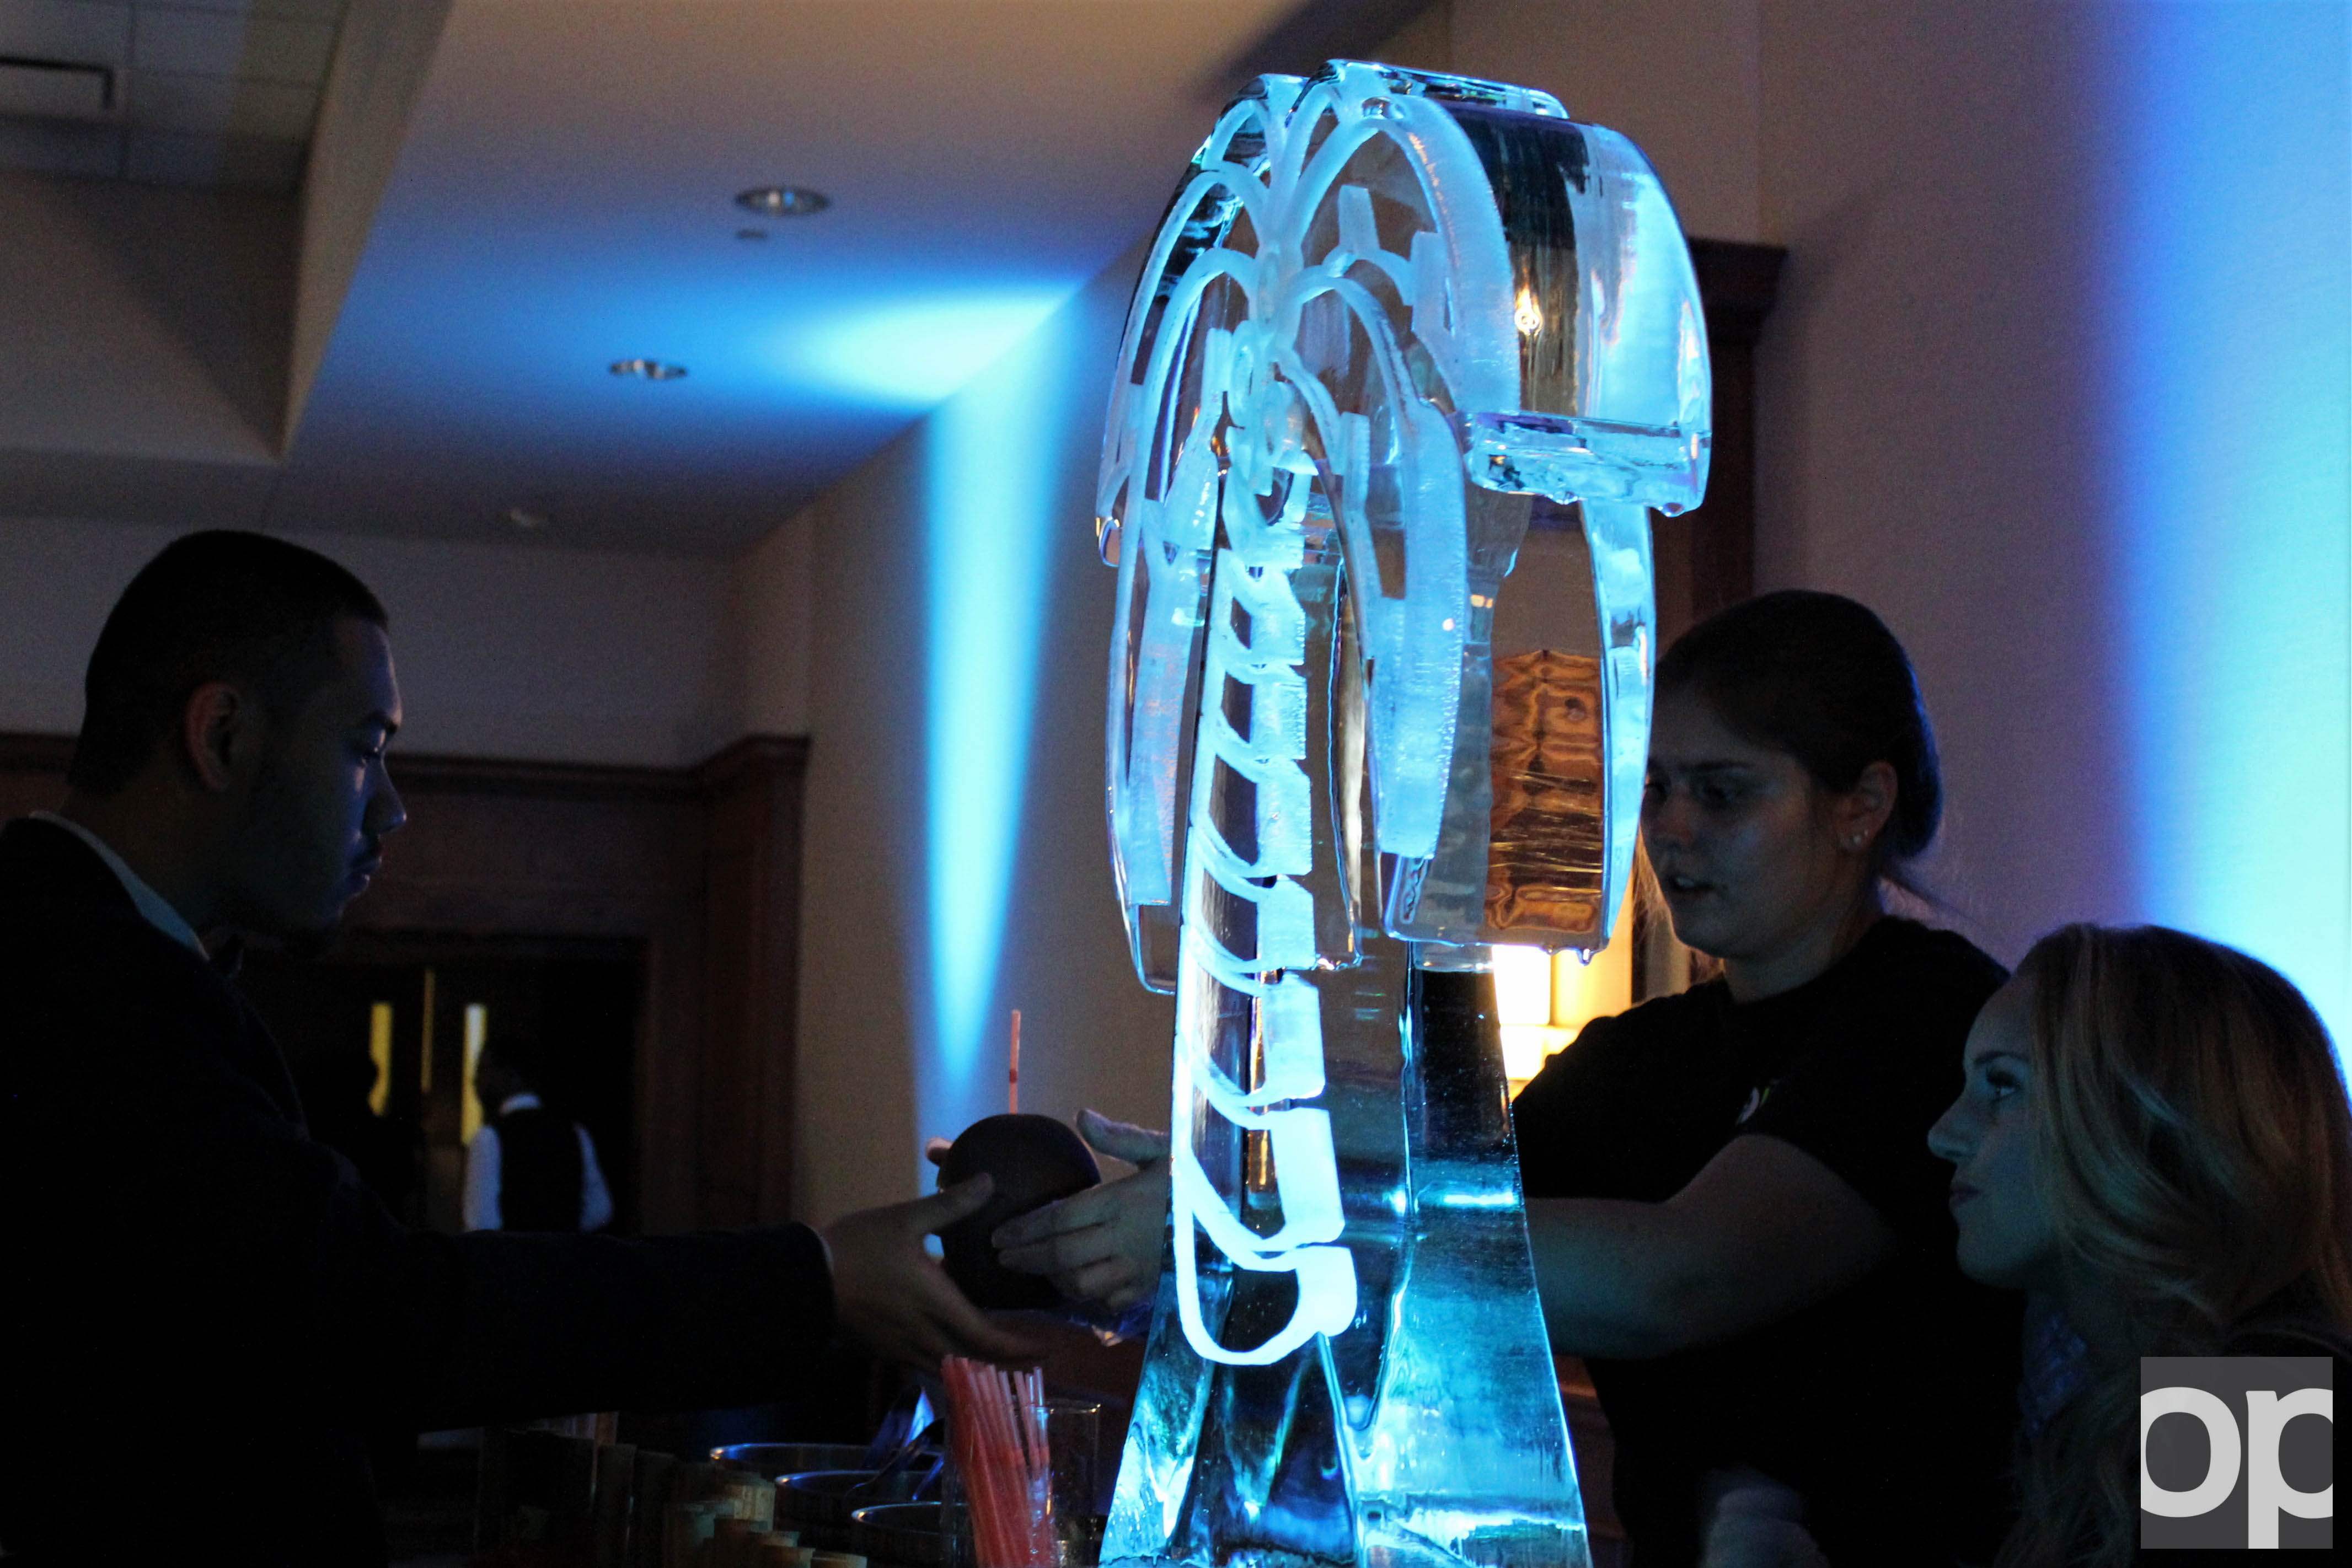 Students were served Caribbean food and drinks as the Banquet Rooms in the OC were illuminated with ice sculpture and other decorations.